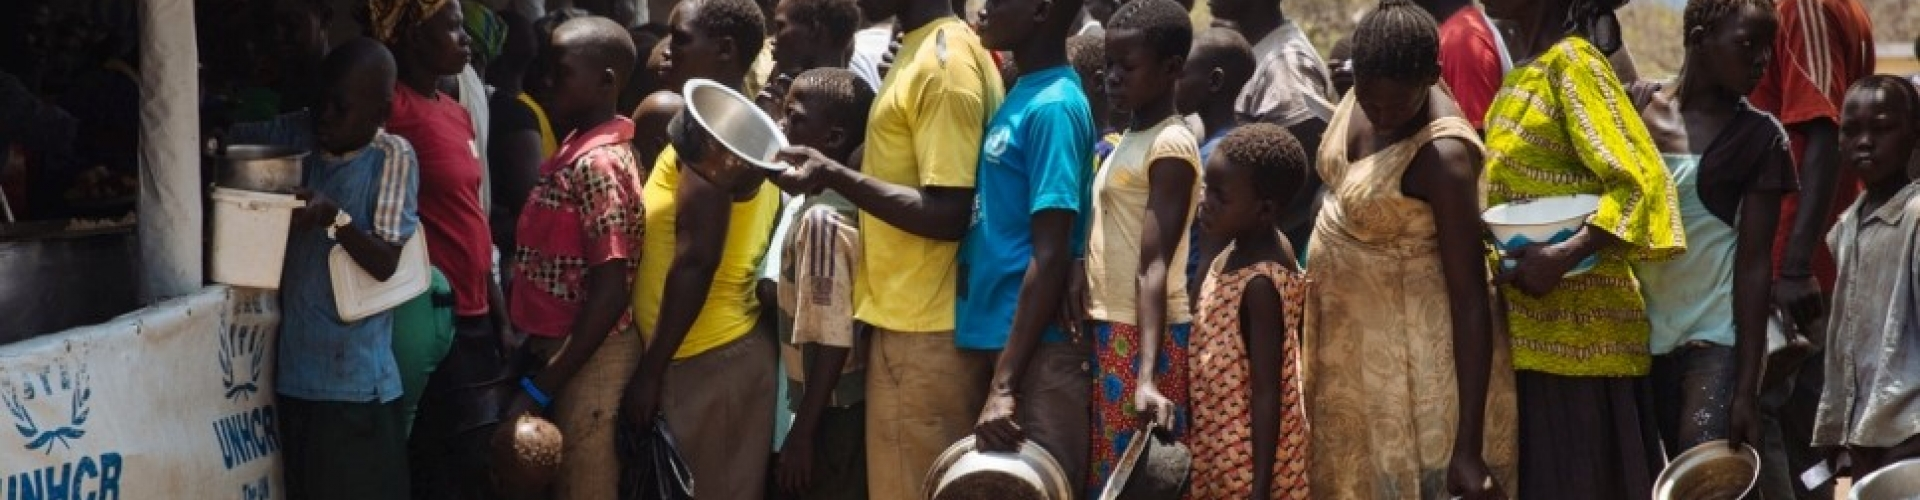 'Breaking Point' imminent: Government of Uganda, UNHCR say help for South Sudan refugee inflow urgently needed